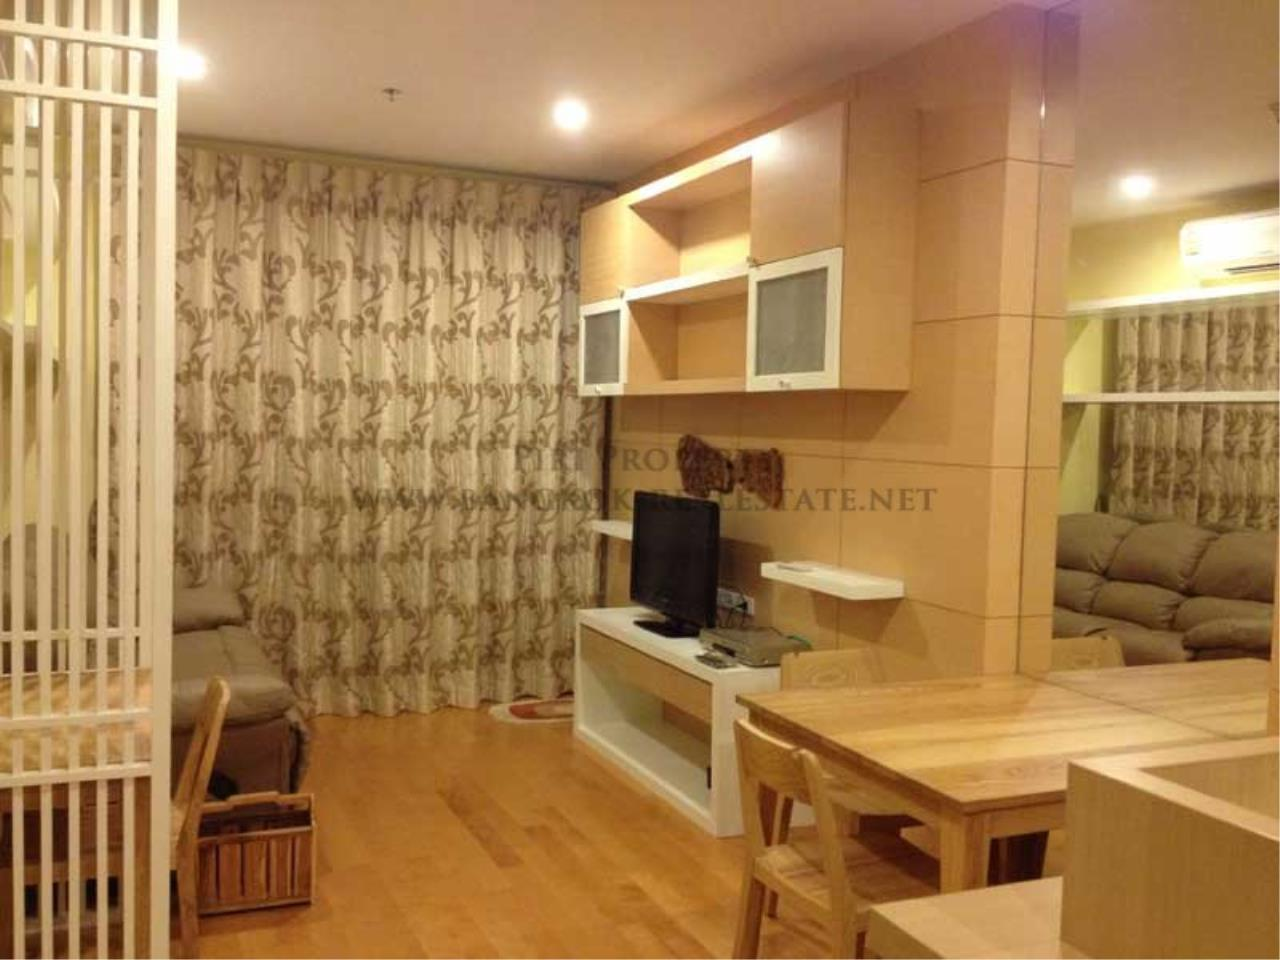 Piri Property Agency's 1 Bedroom in Villa Ratchatewi - Fully furnished on 25th Floor 1